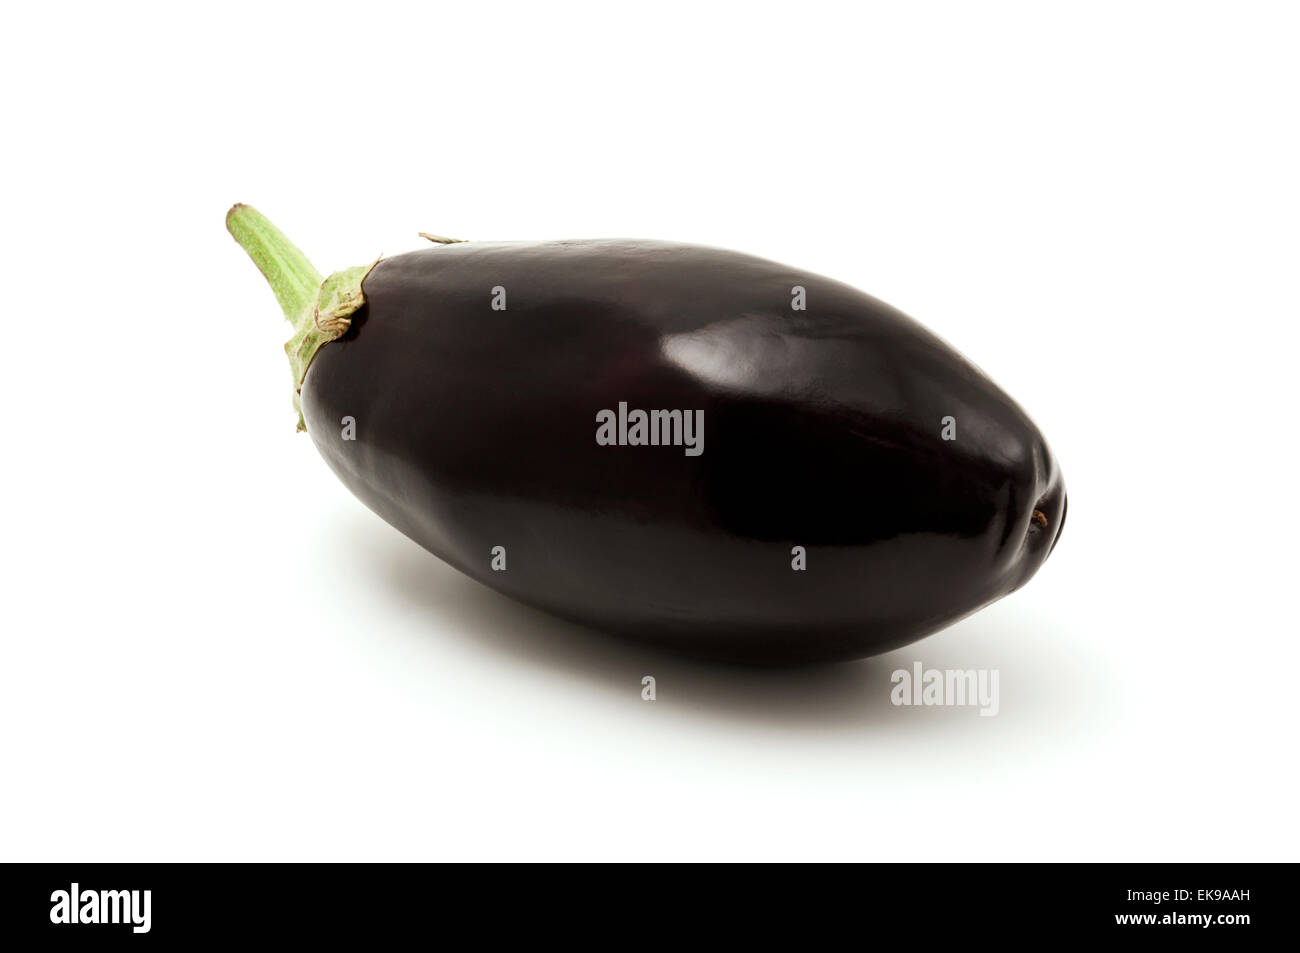 Italian eggplant on a white background Stock Photo